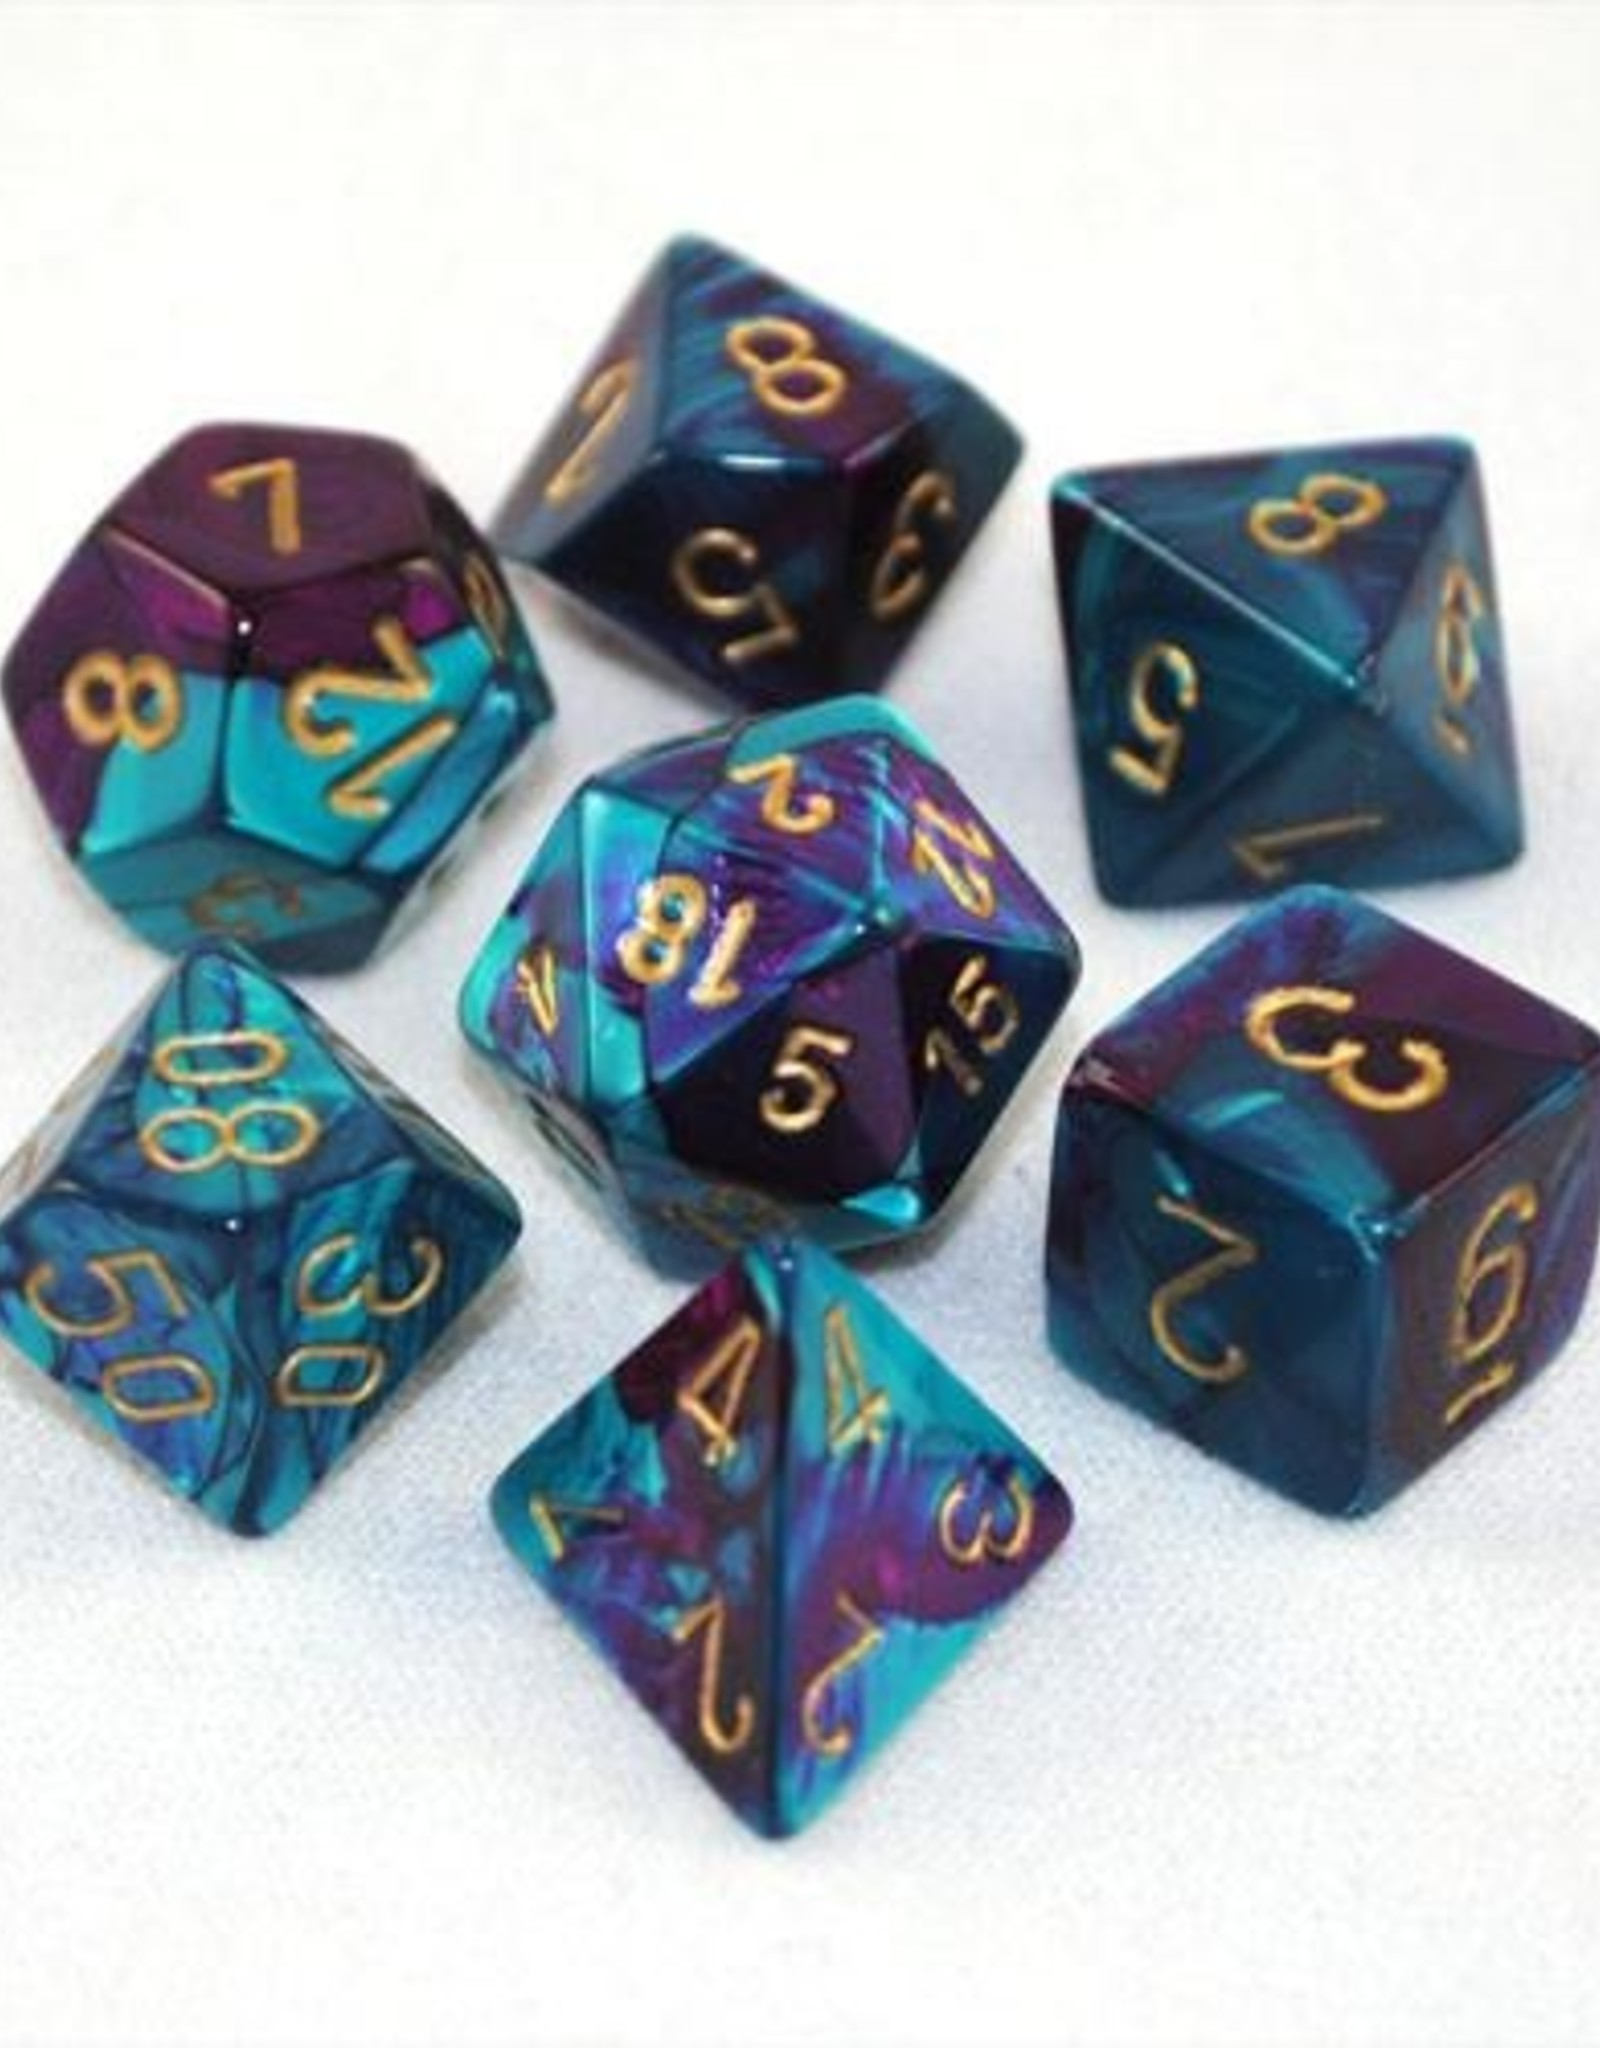 Chessex Chessex 7-Die set Gemini - Purple-Teal/Gold